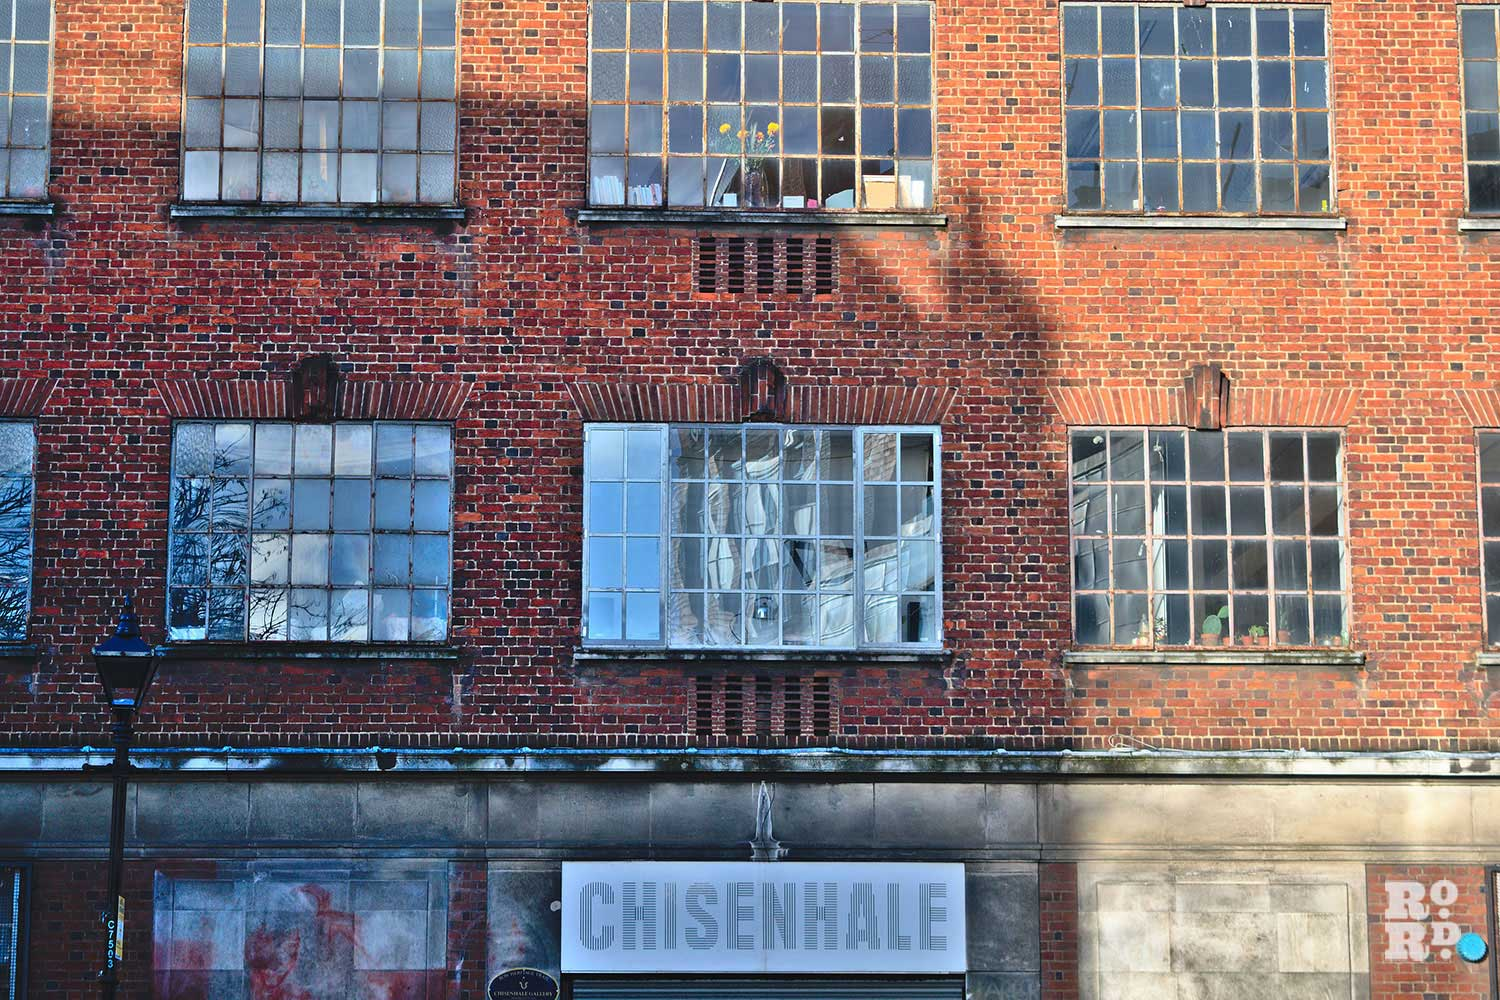 Chisenhale Gallery on Old Ford Road